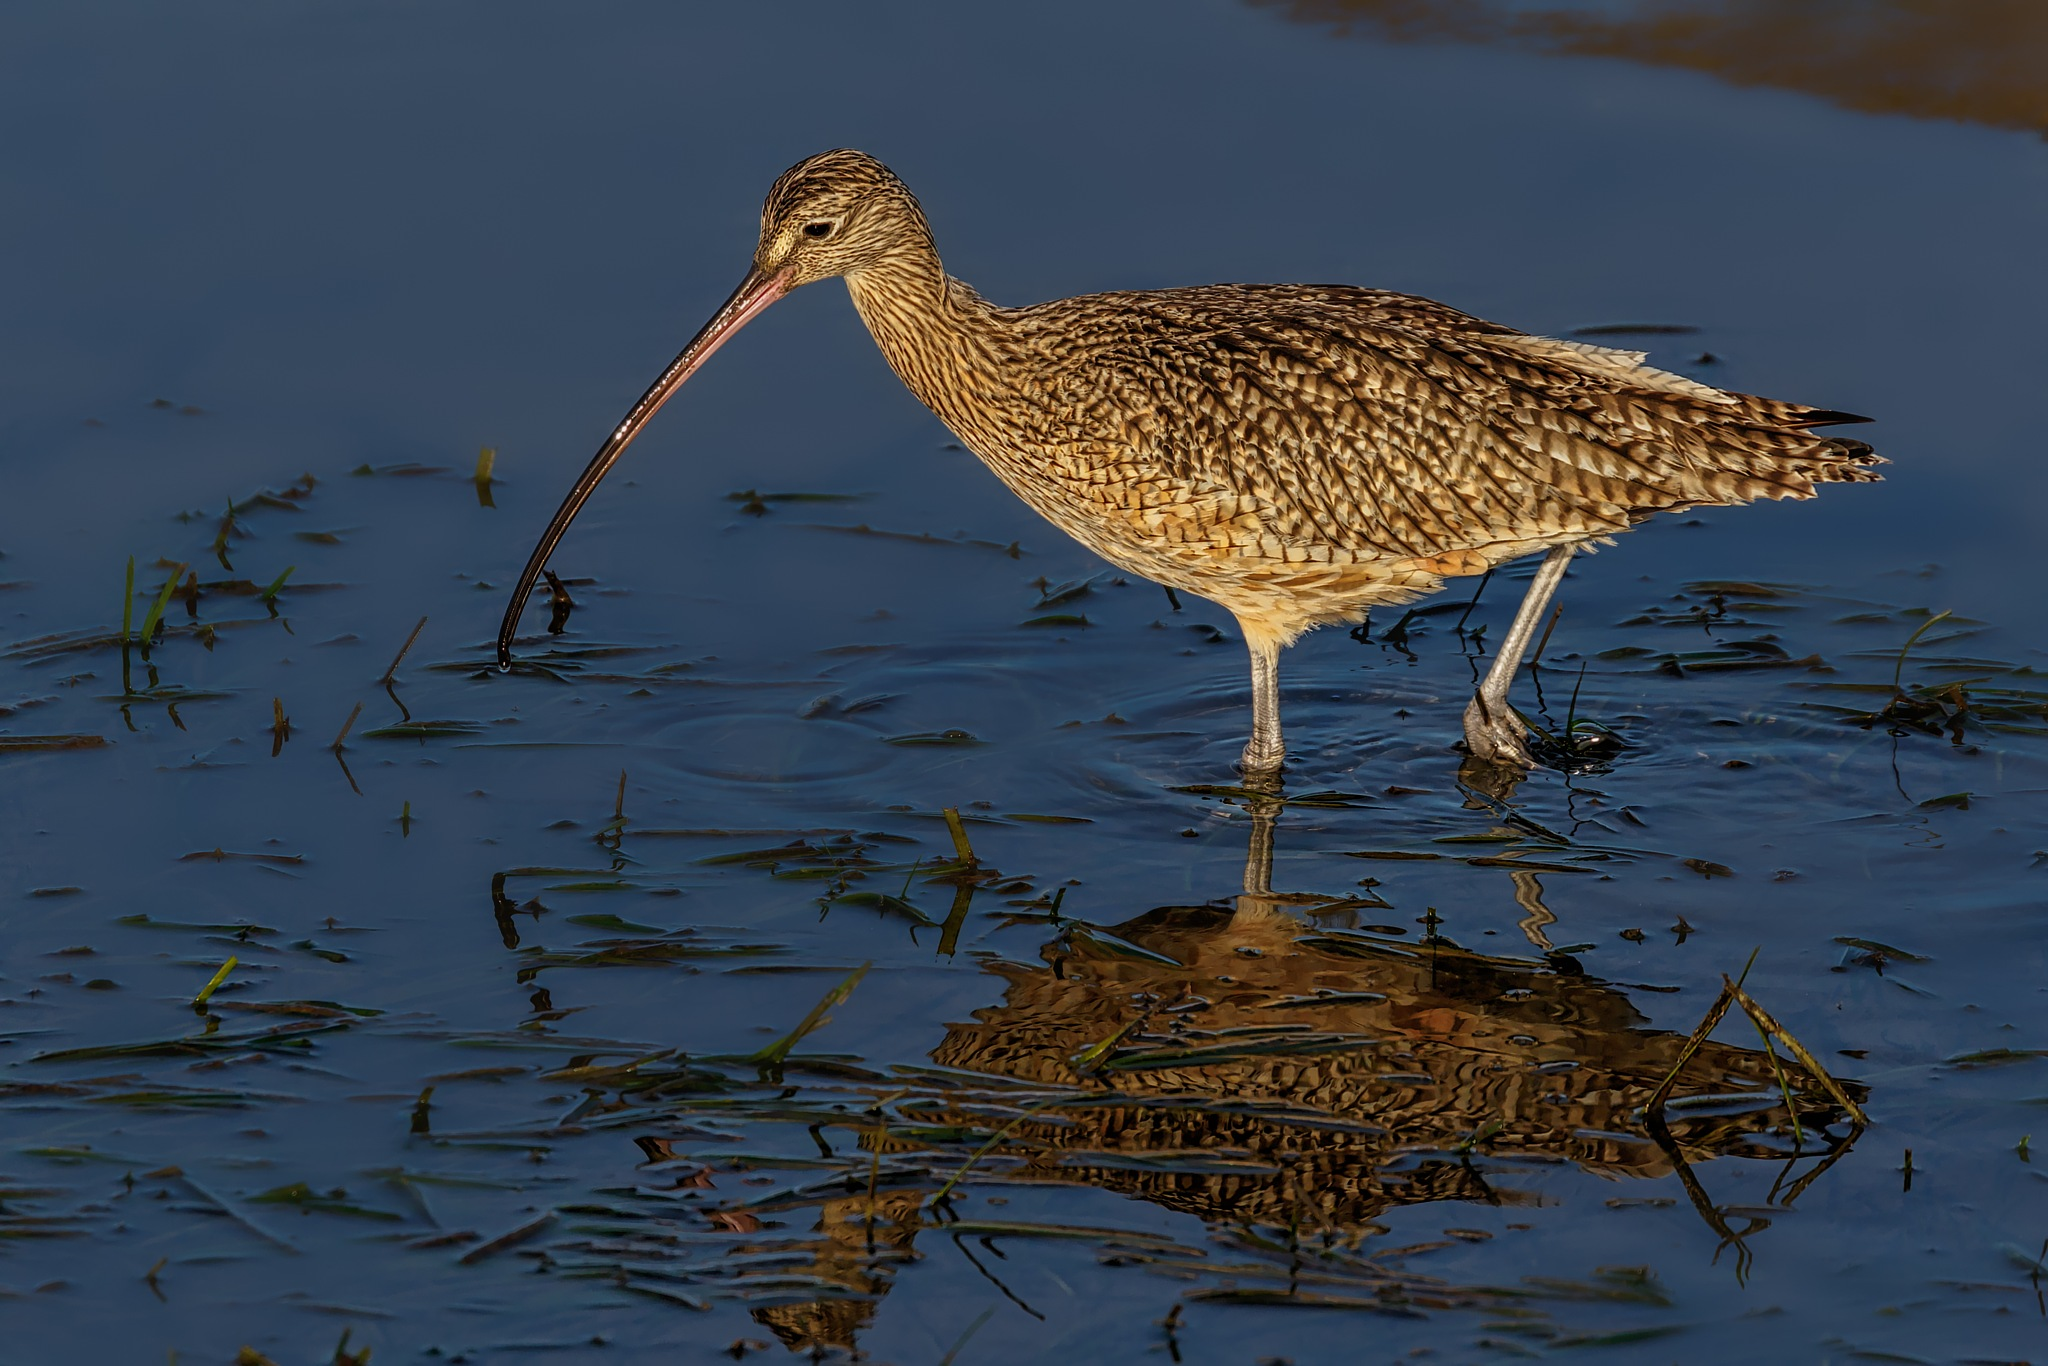 Long-billed curlew by Boris Droutman